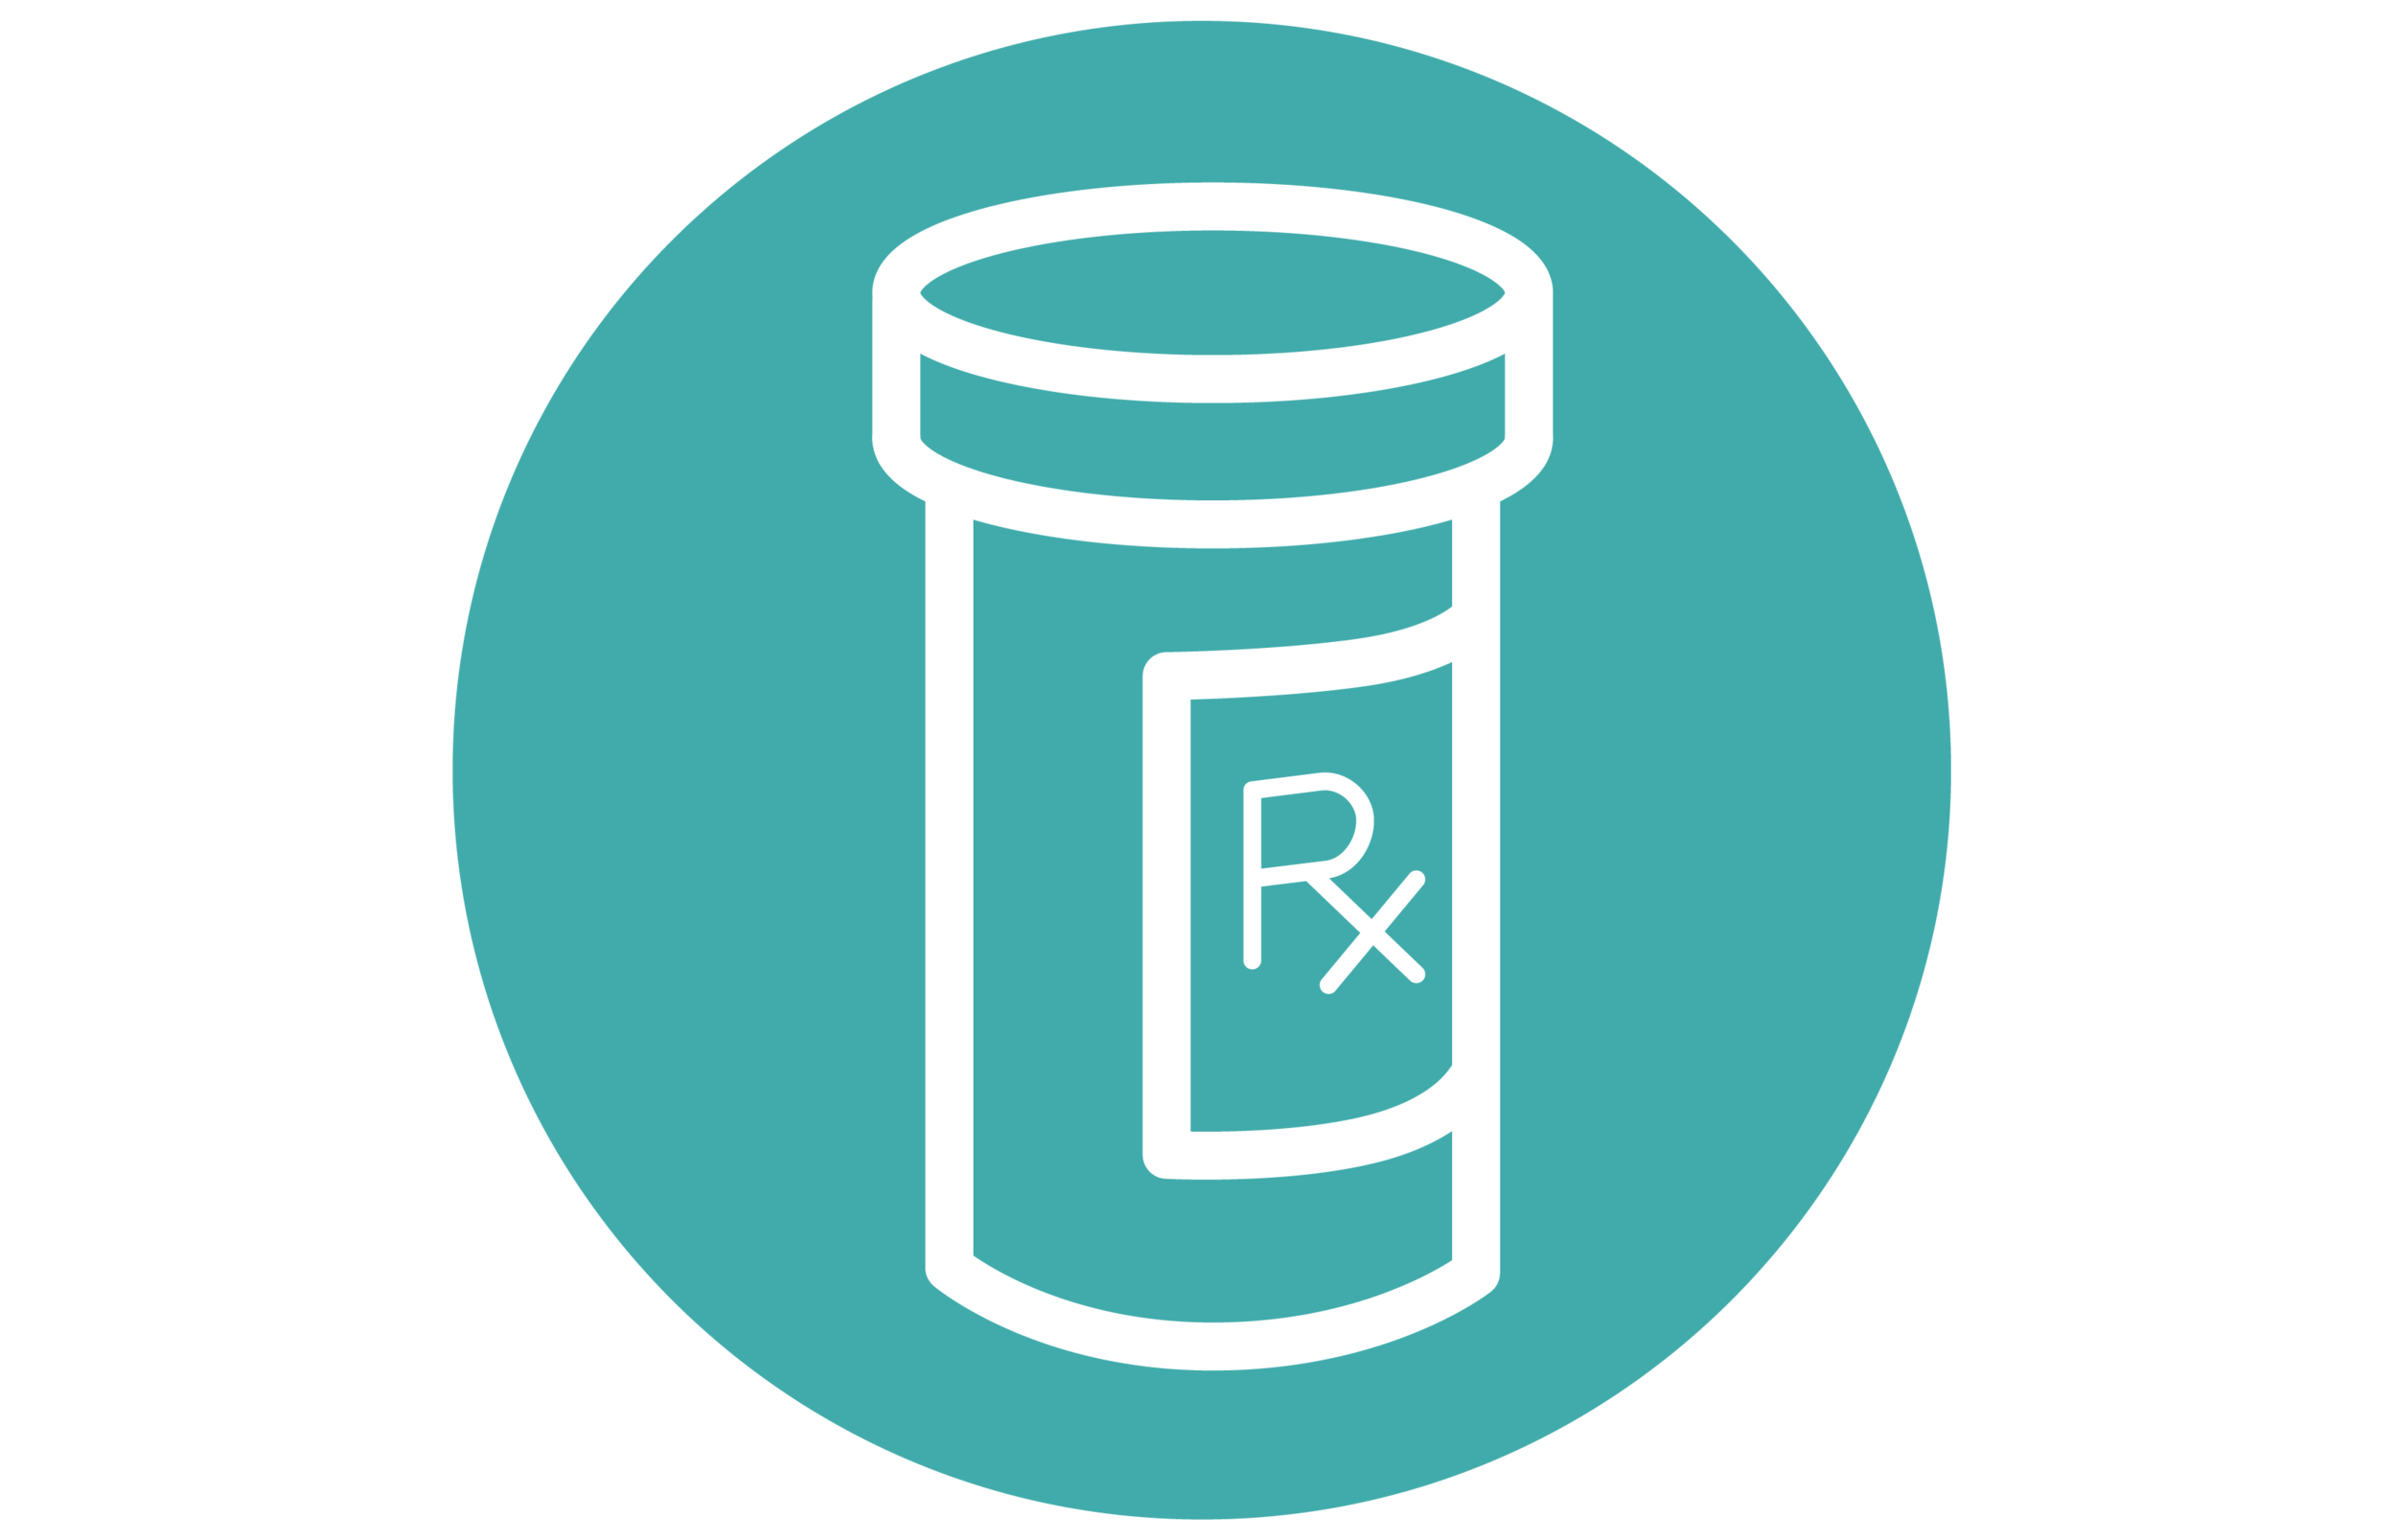 graphic of a prescription bottle